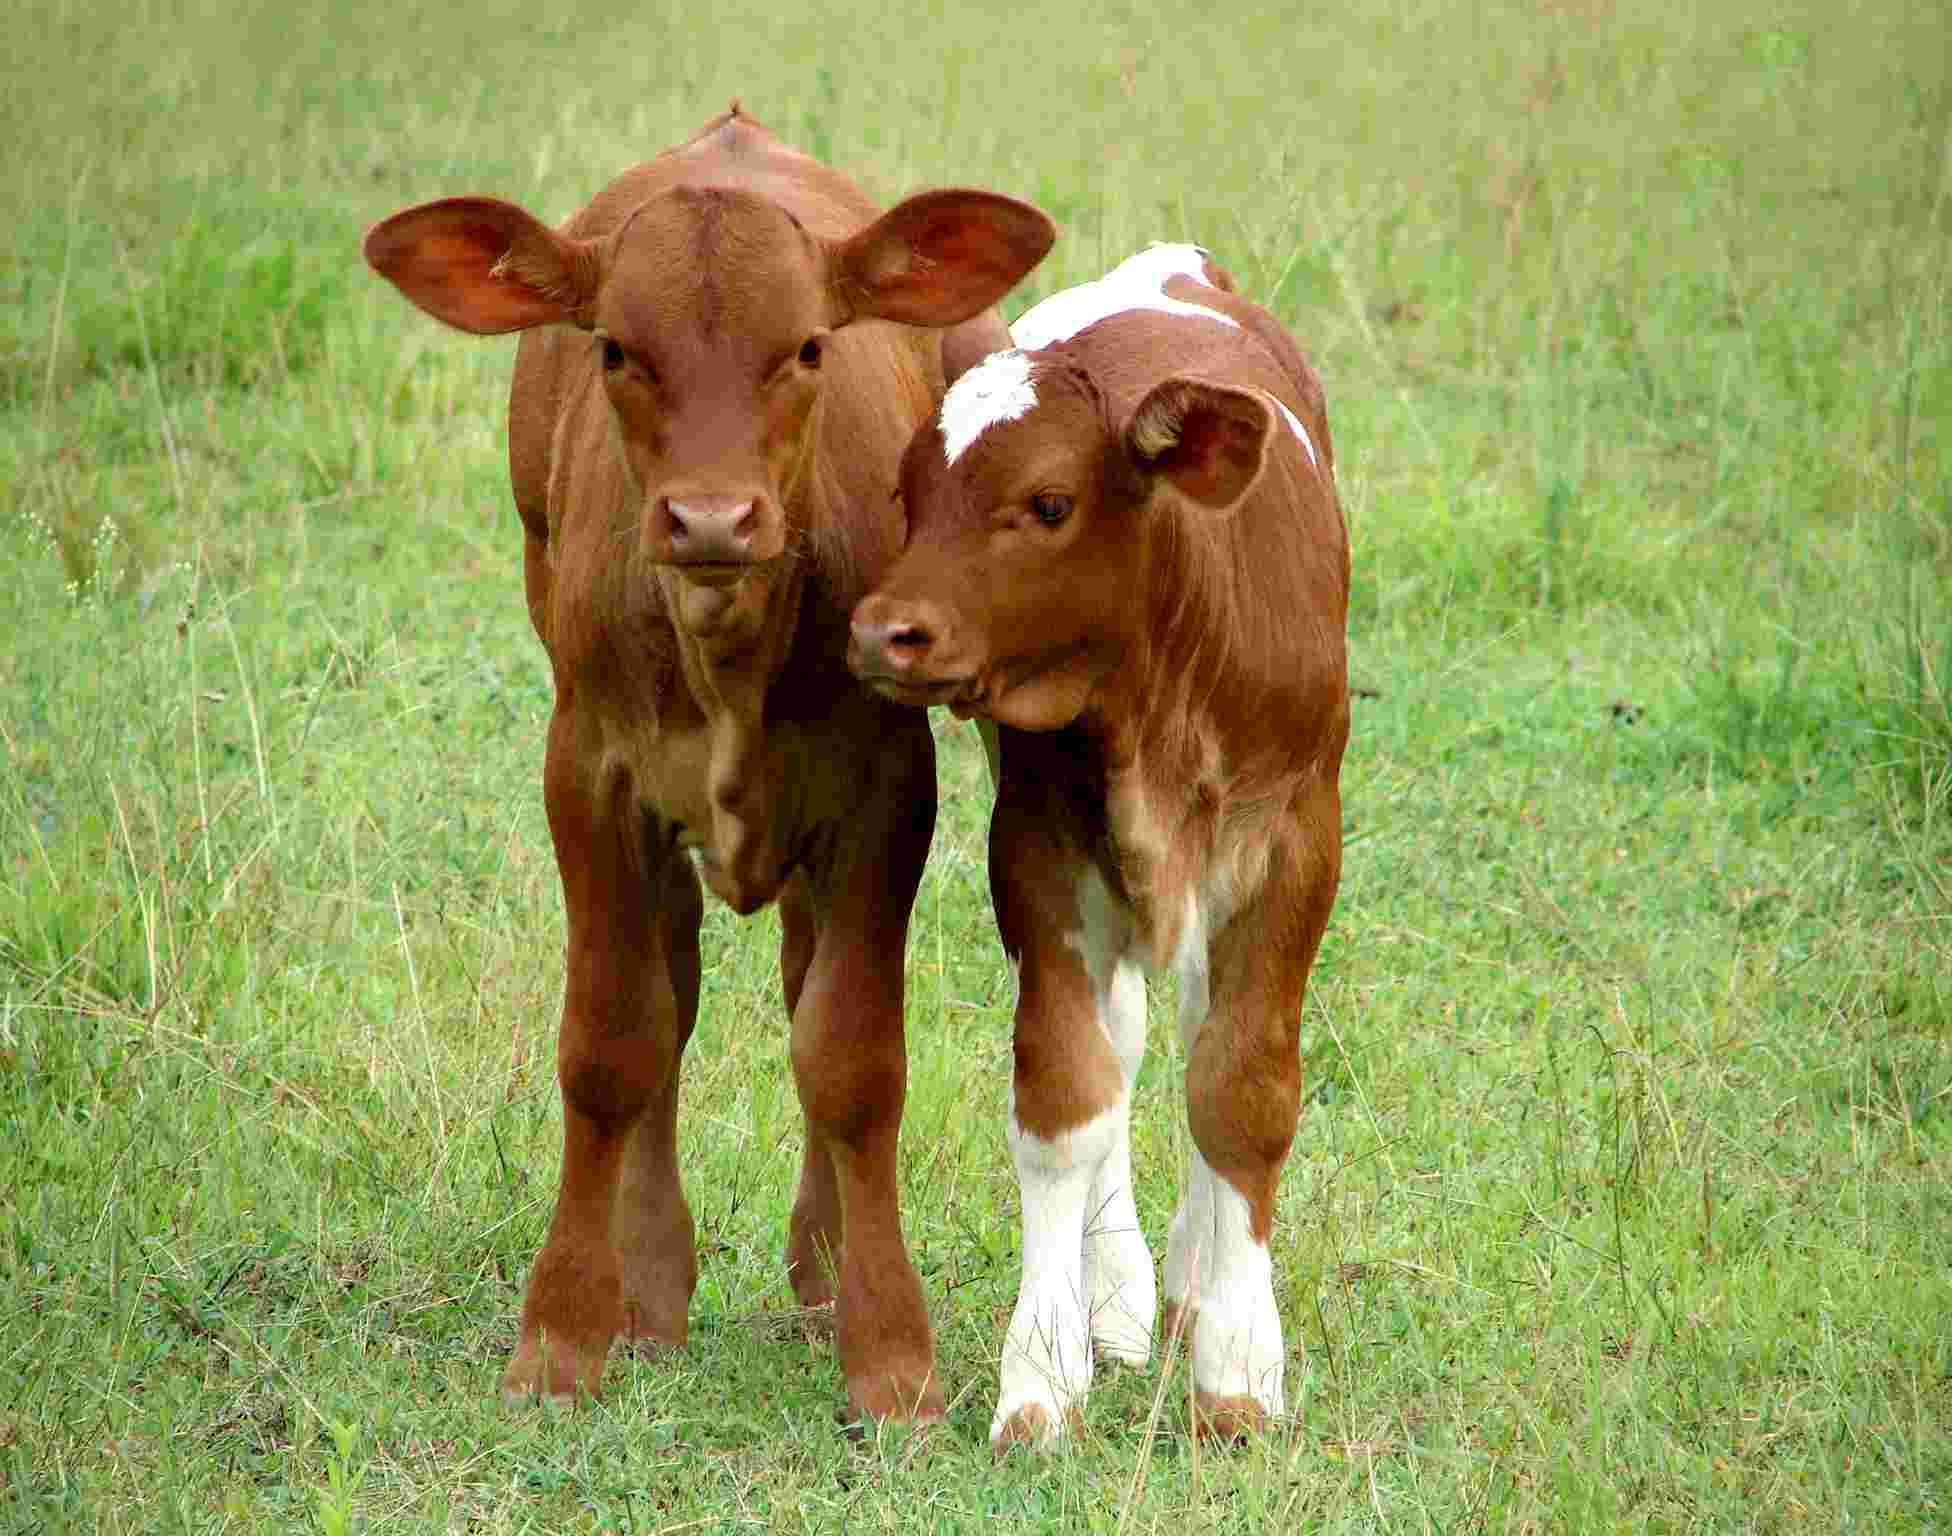 Motherless calves are called